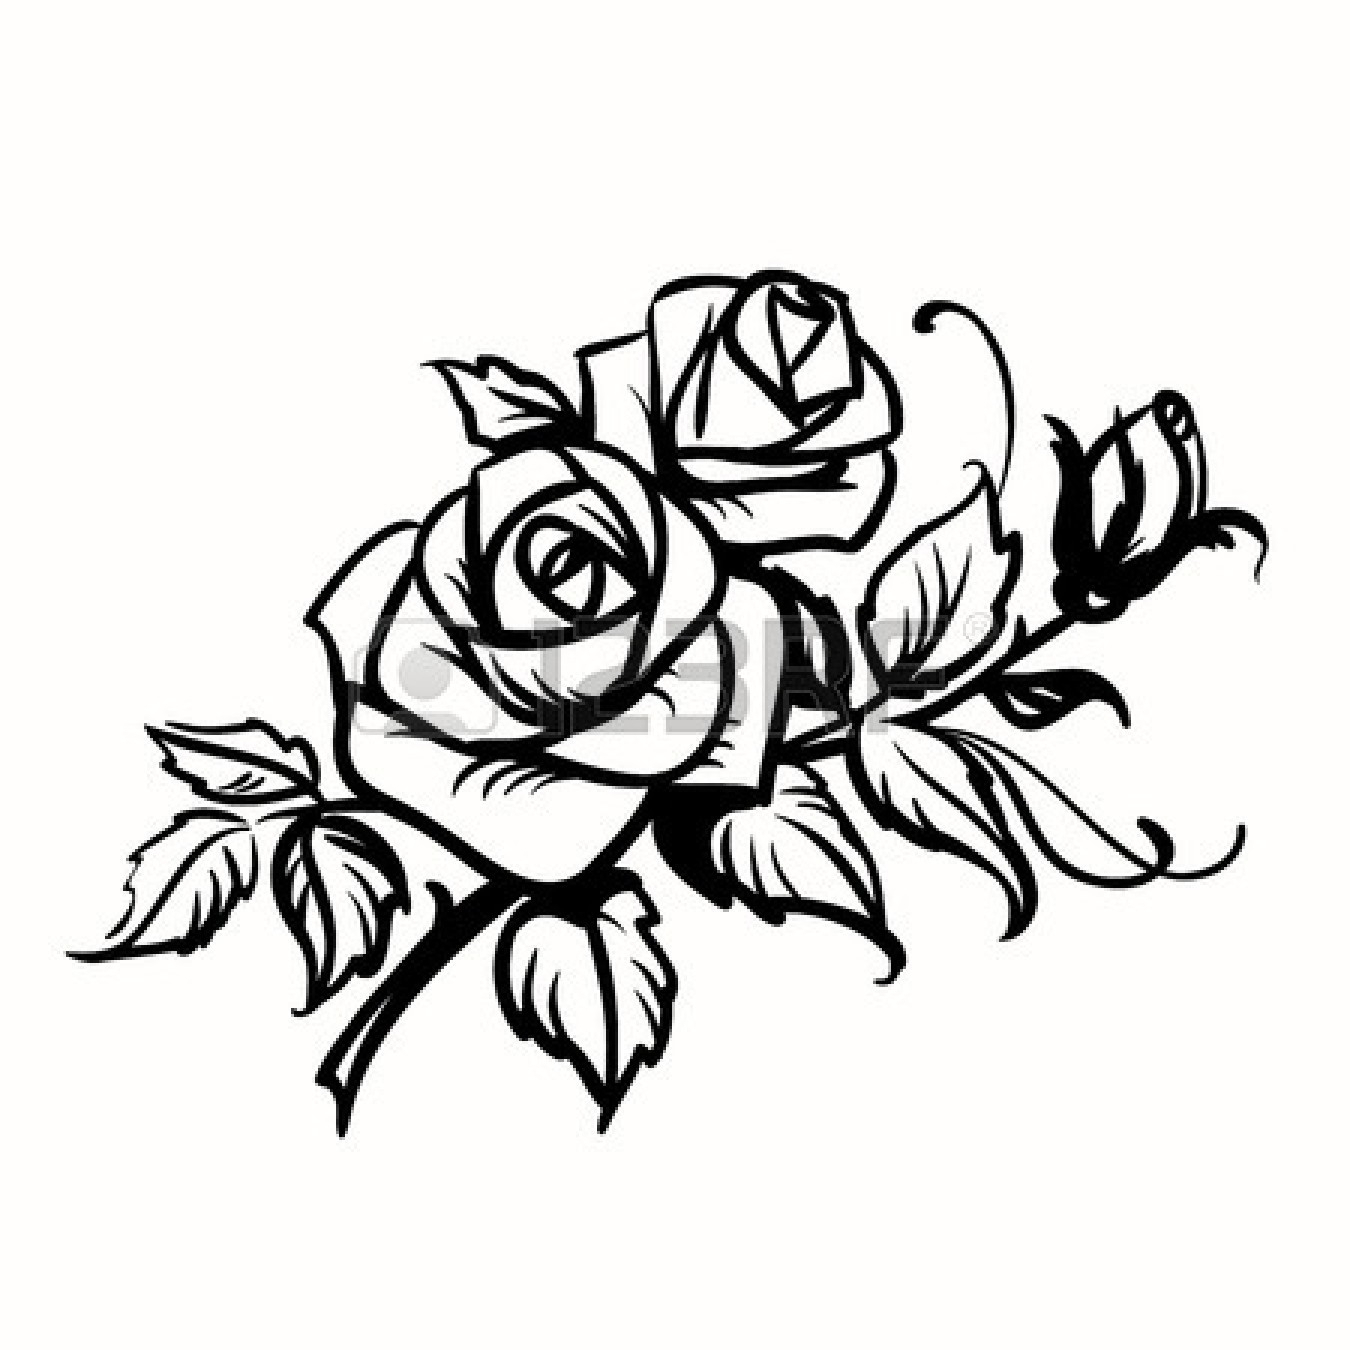 1350x1350 Rose Line Drawing Clip Art Knumathise Rose Clip Art Outline Images